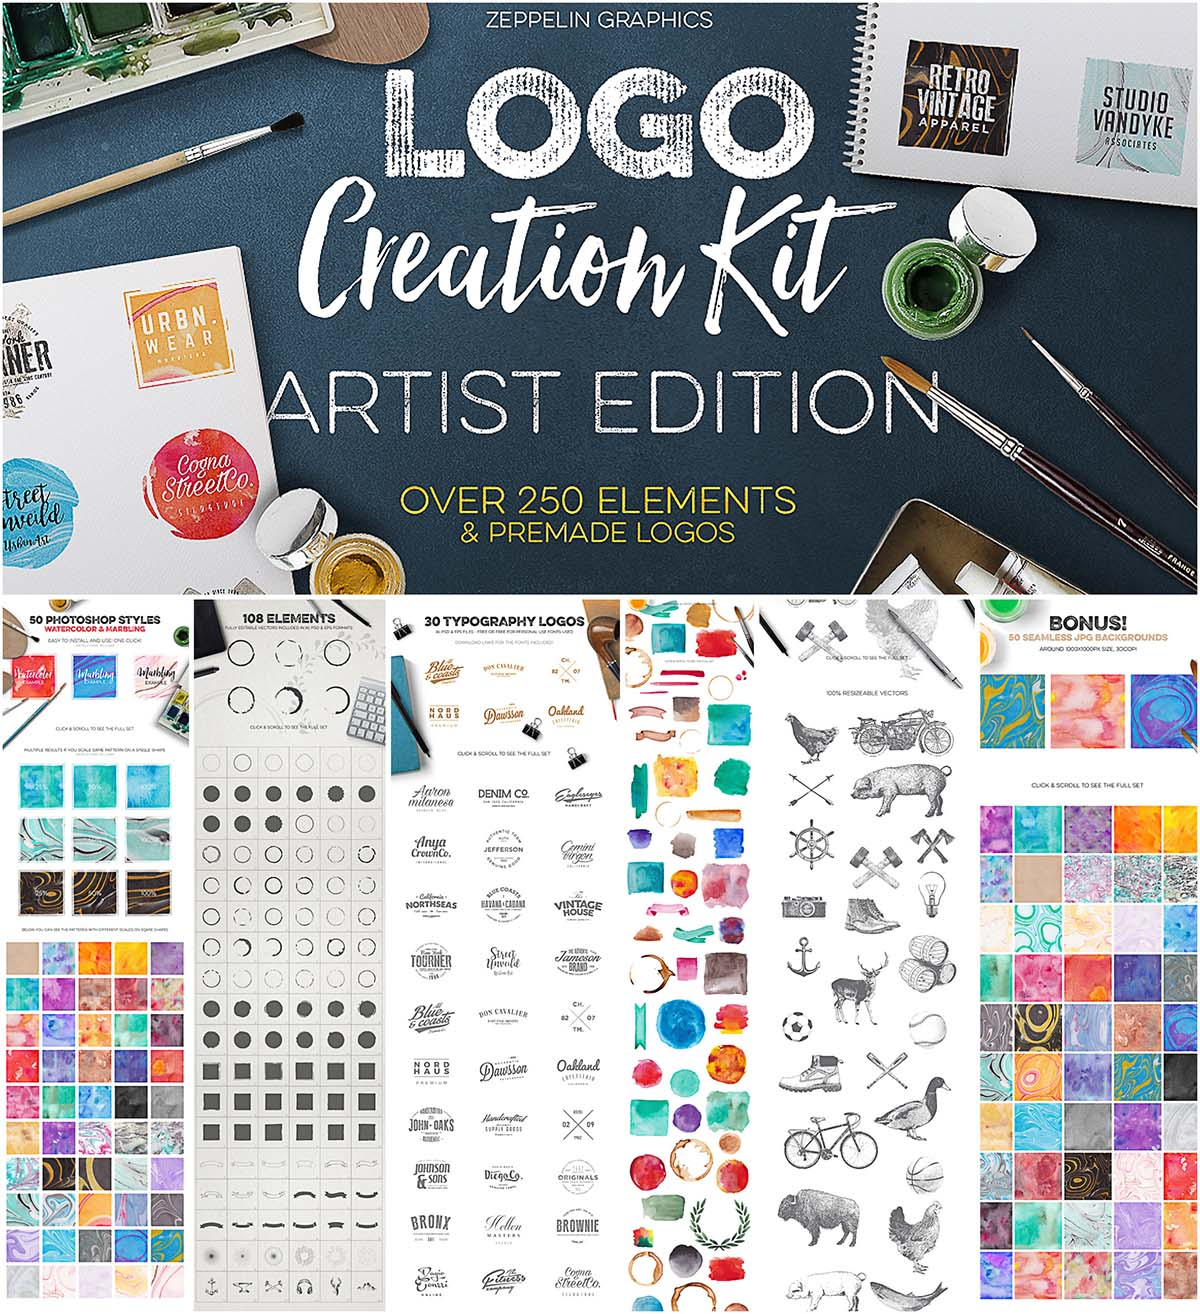 Logo creation kit vol.5 artist edition